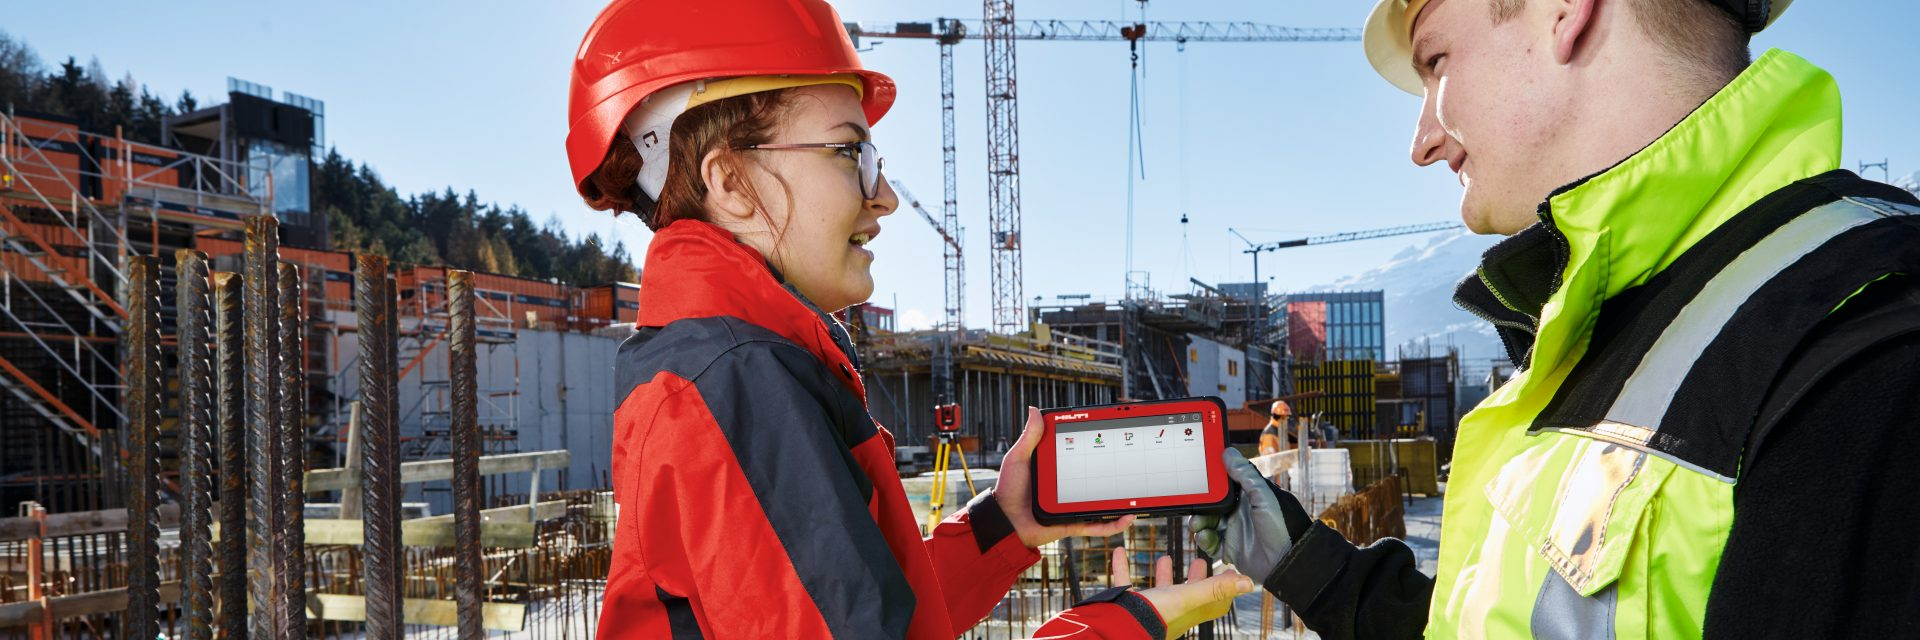 Hilti advanced layout solution (total station) in use at the jobsite